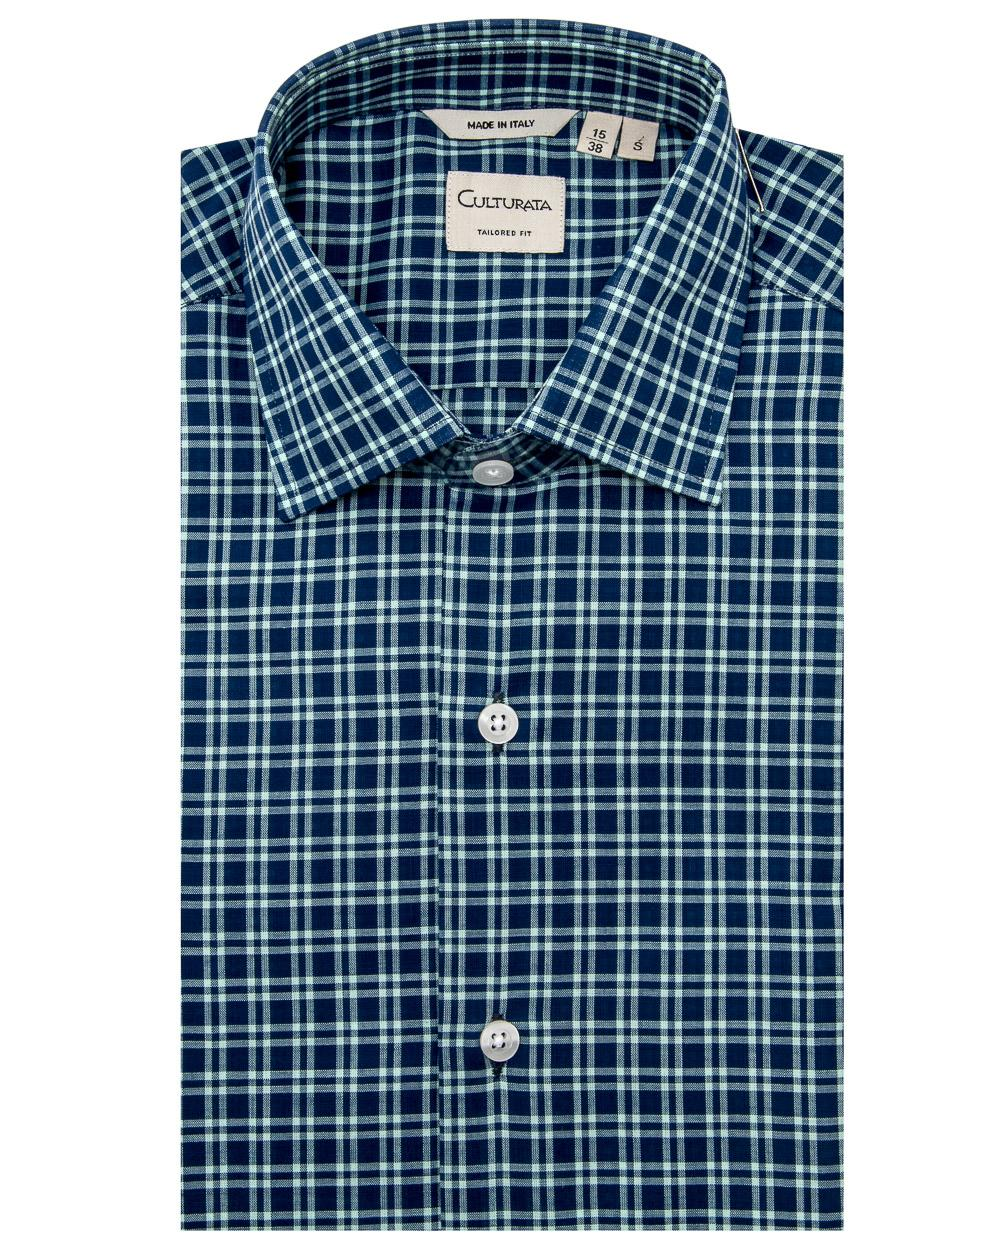 Culturata Navy And White Plaid Dress Shirt In Blue For Men